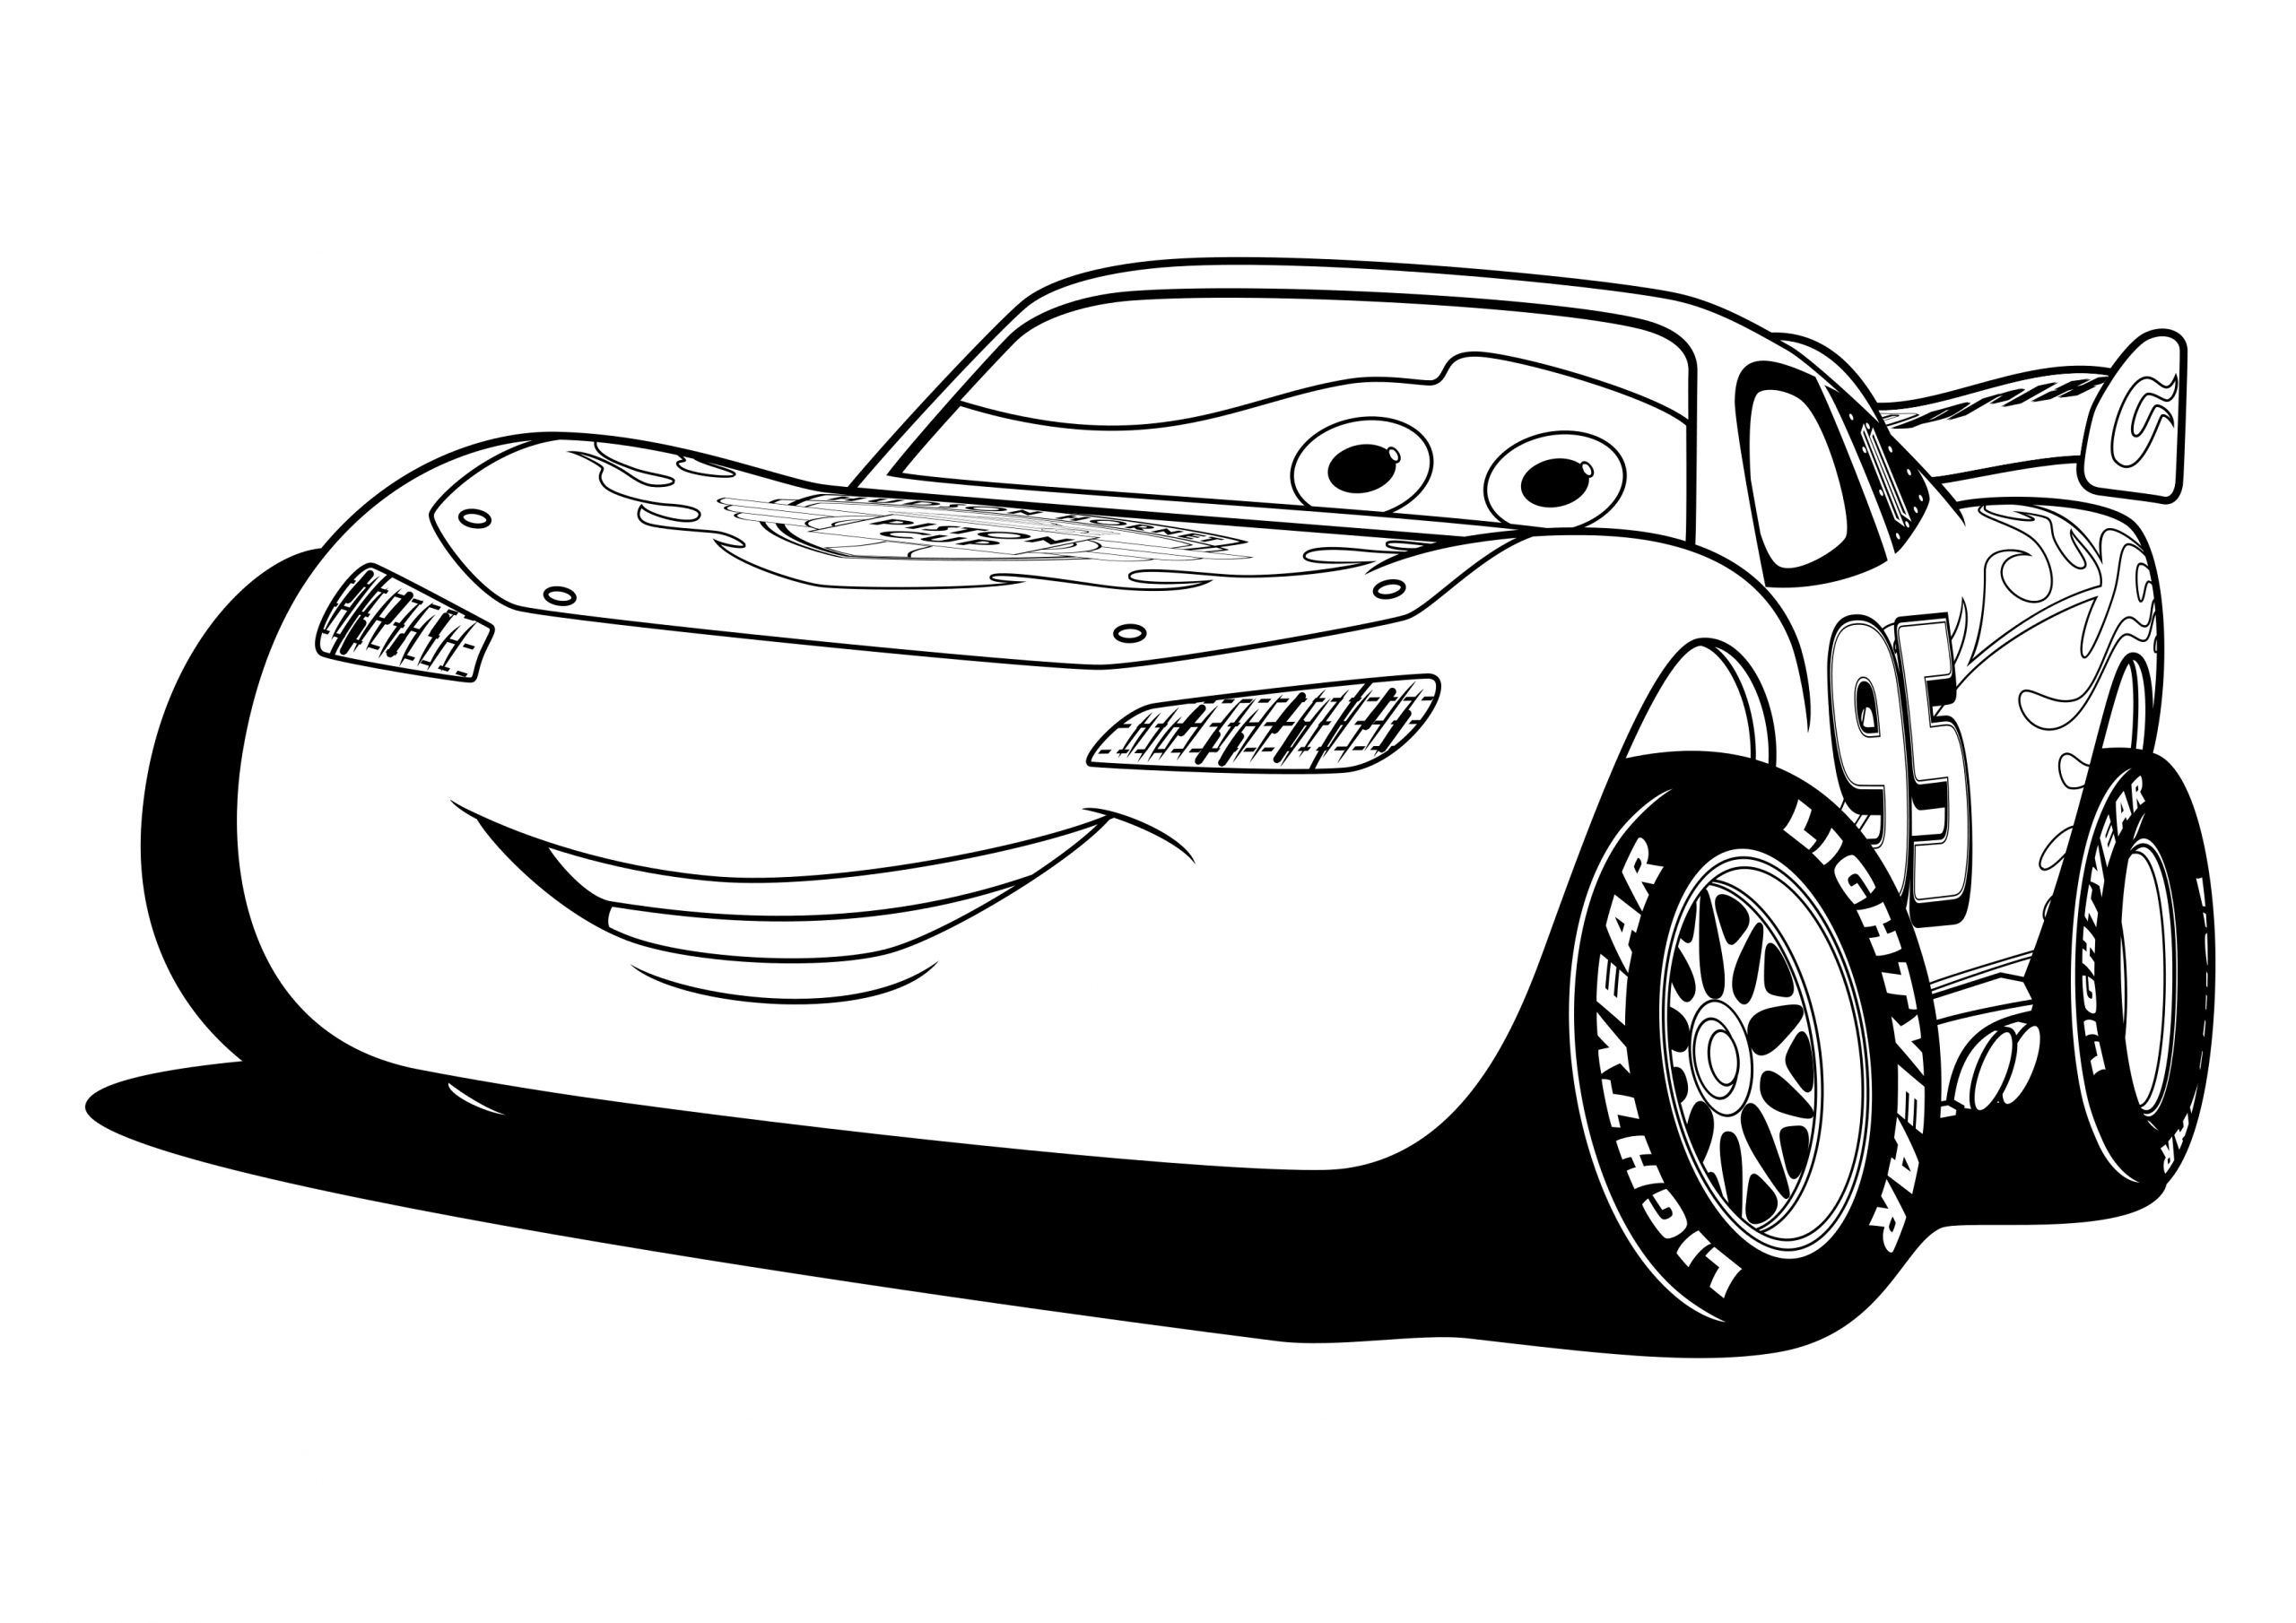 lightning mcqueen printables lightning mcqueen and mater coloring pages at getdrawings mcqueen printables lightning